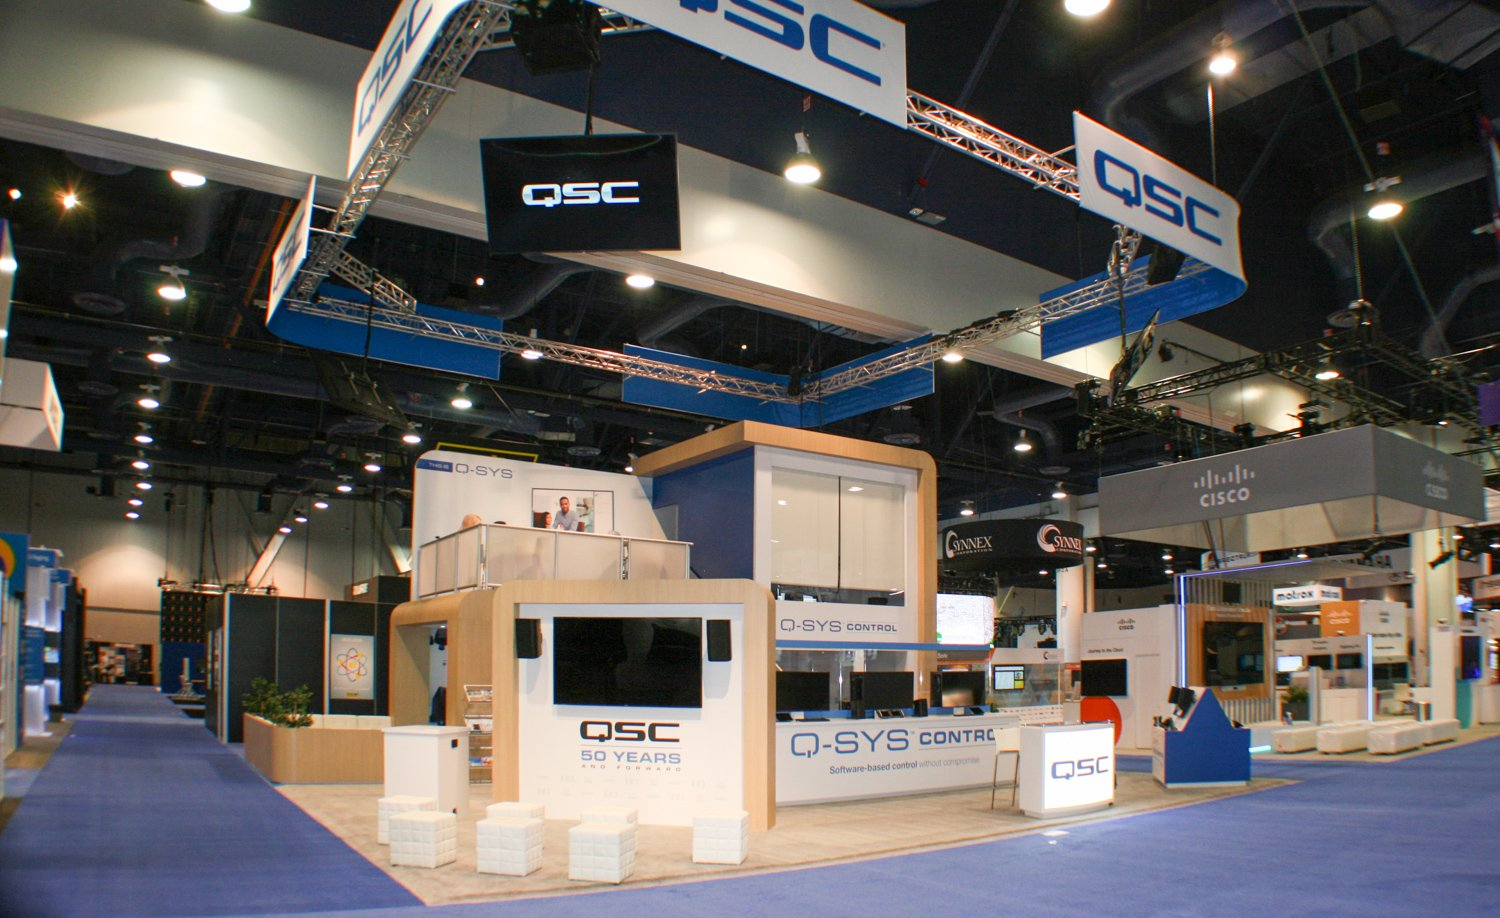 QSC Showroom